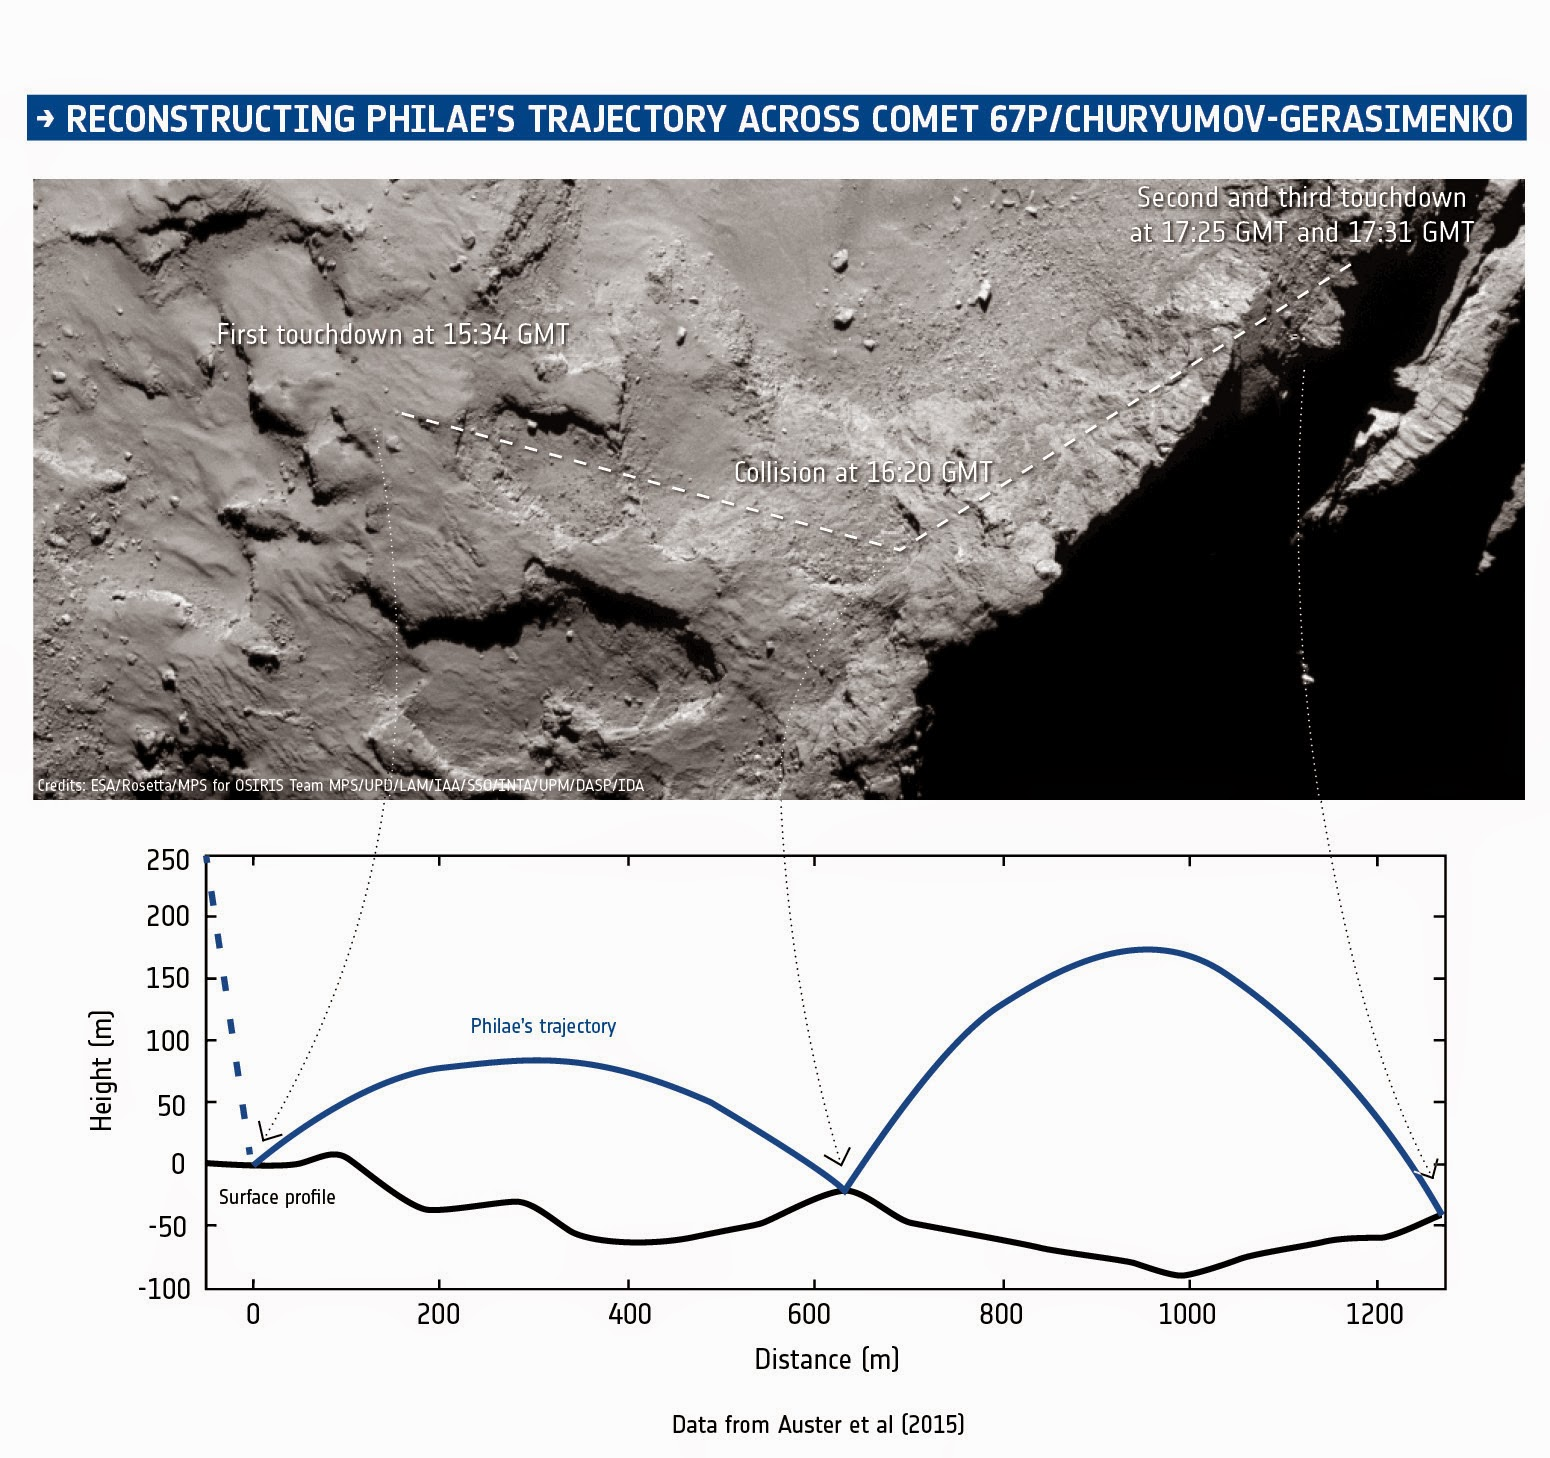 Magnetic field data from ROMAP on Philae, combined with information from the CONSERT experiment that provided an estimate of the final landing region, timing information, images from Rosetta's OSIRIS camera, assumptions about the gravity of the comet, and measurements of its shape, have been used to reconstruct the trajectory of the lander during its descent and subsequent landings on and bounces over the surface of Comet 67P/Churyumov-Gerasimenko on 12 November 2014. The times are as recorded by the spacecraft; the confirmation signals arrived on Earth 28 minutes later. The heights above the surface assume a reference sphere centred on the centre of mass of the comet and with a radius of 2393 m reaching first touchdown point. Credit: ESA/Data: Auster et al. (2015)/Comet image: ESA/Rosetta/MPS for OSIRIS Team MPS/UPD/LAM/IAA/SSO/INTA/UPM/DASP/IDA